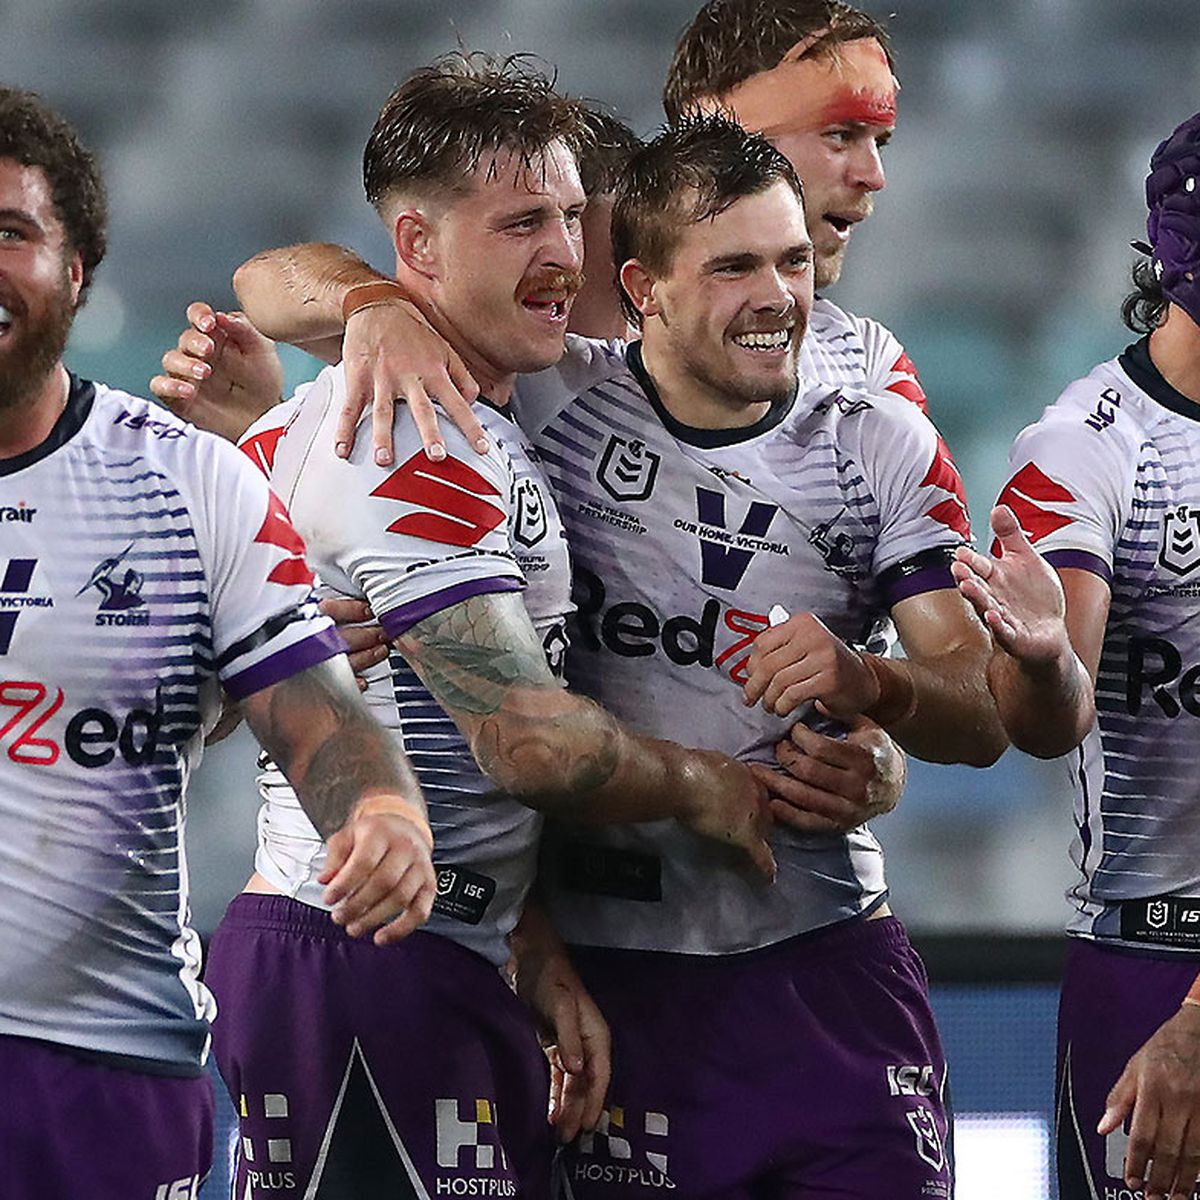 Nrl Melbourne Storm Down South Sydney With Big Second Half